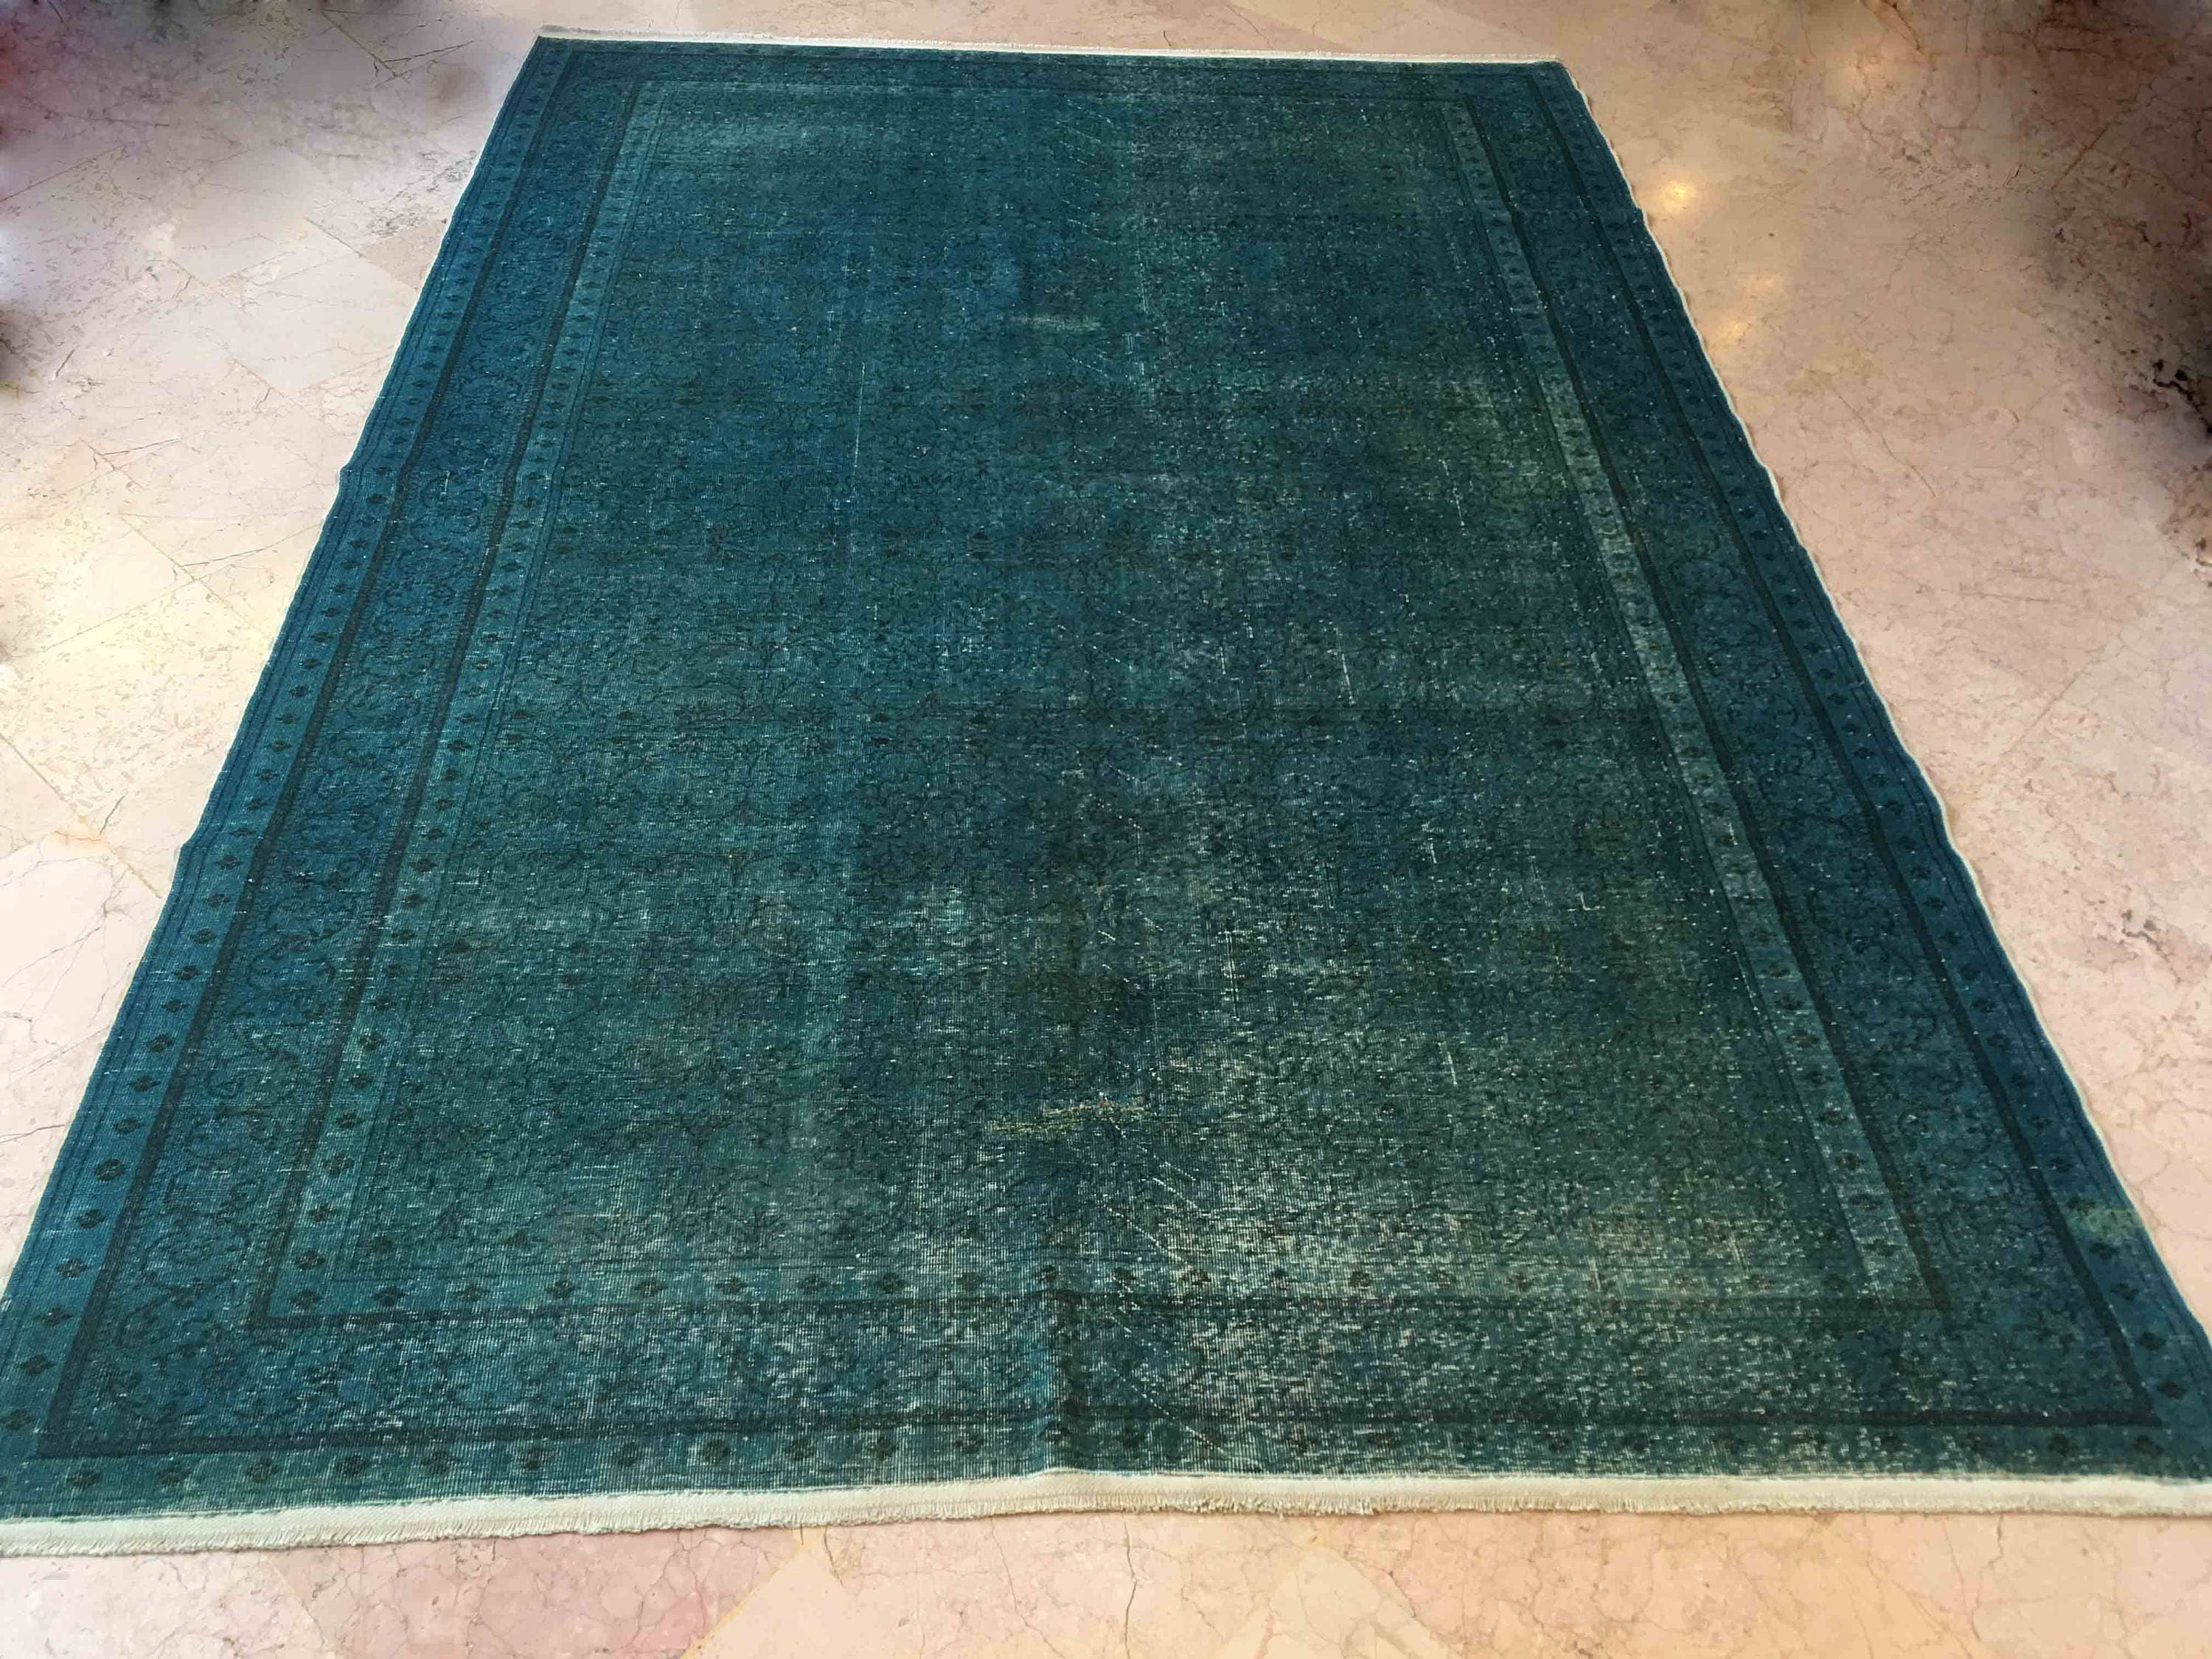 Completely new teal rug, teal rustic home decor, overdyed rug, overdyed turkish  PD34